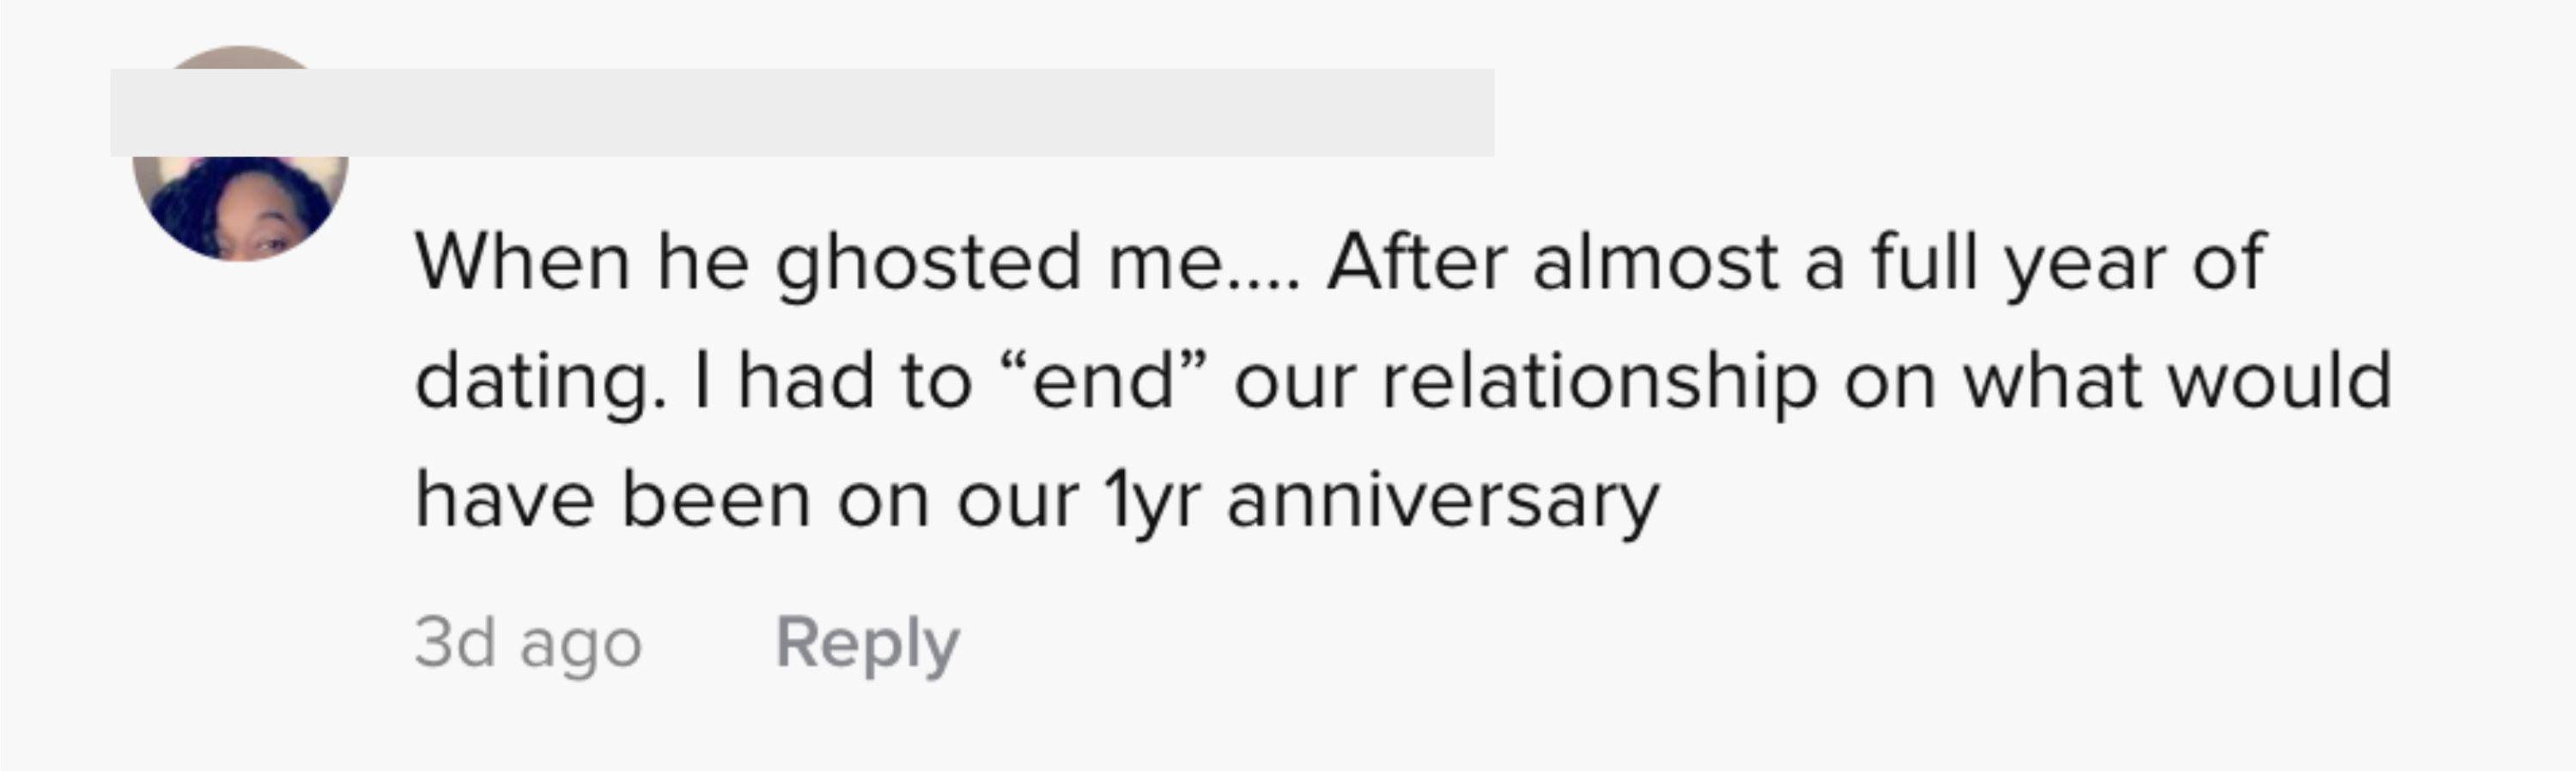 When he ghosted me after almost a full year of dating